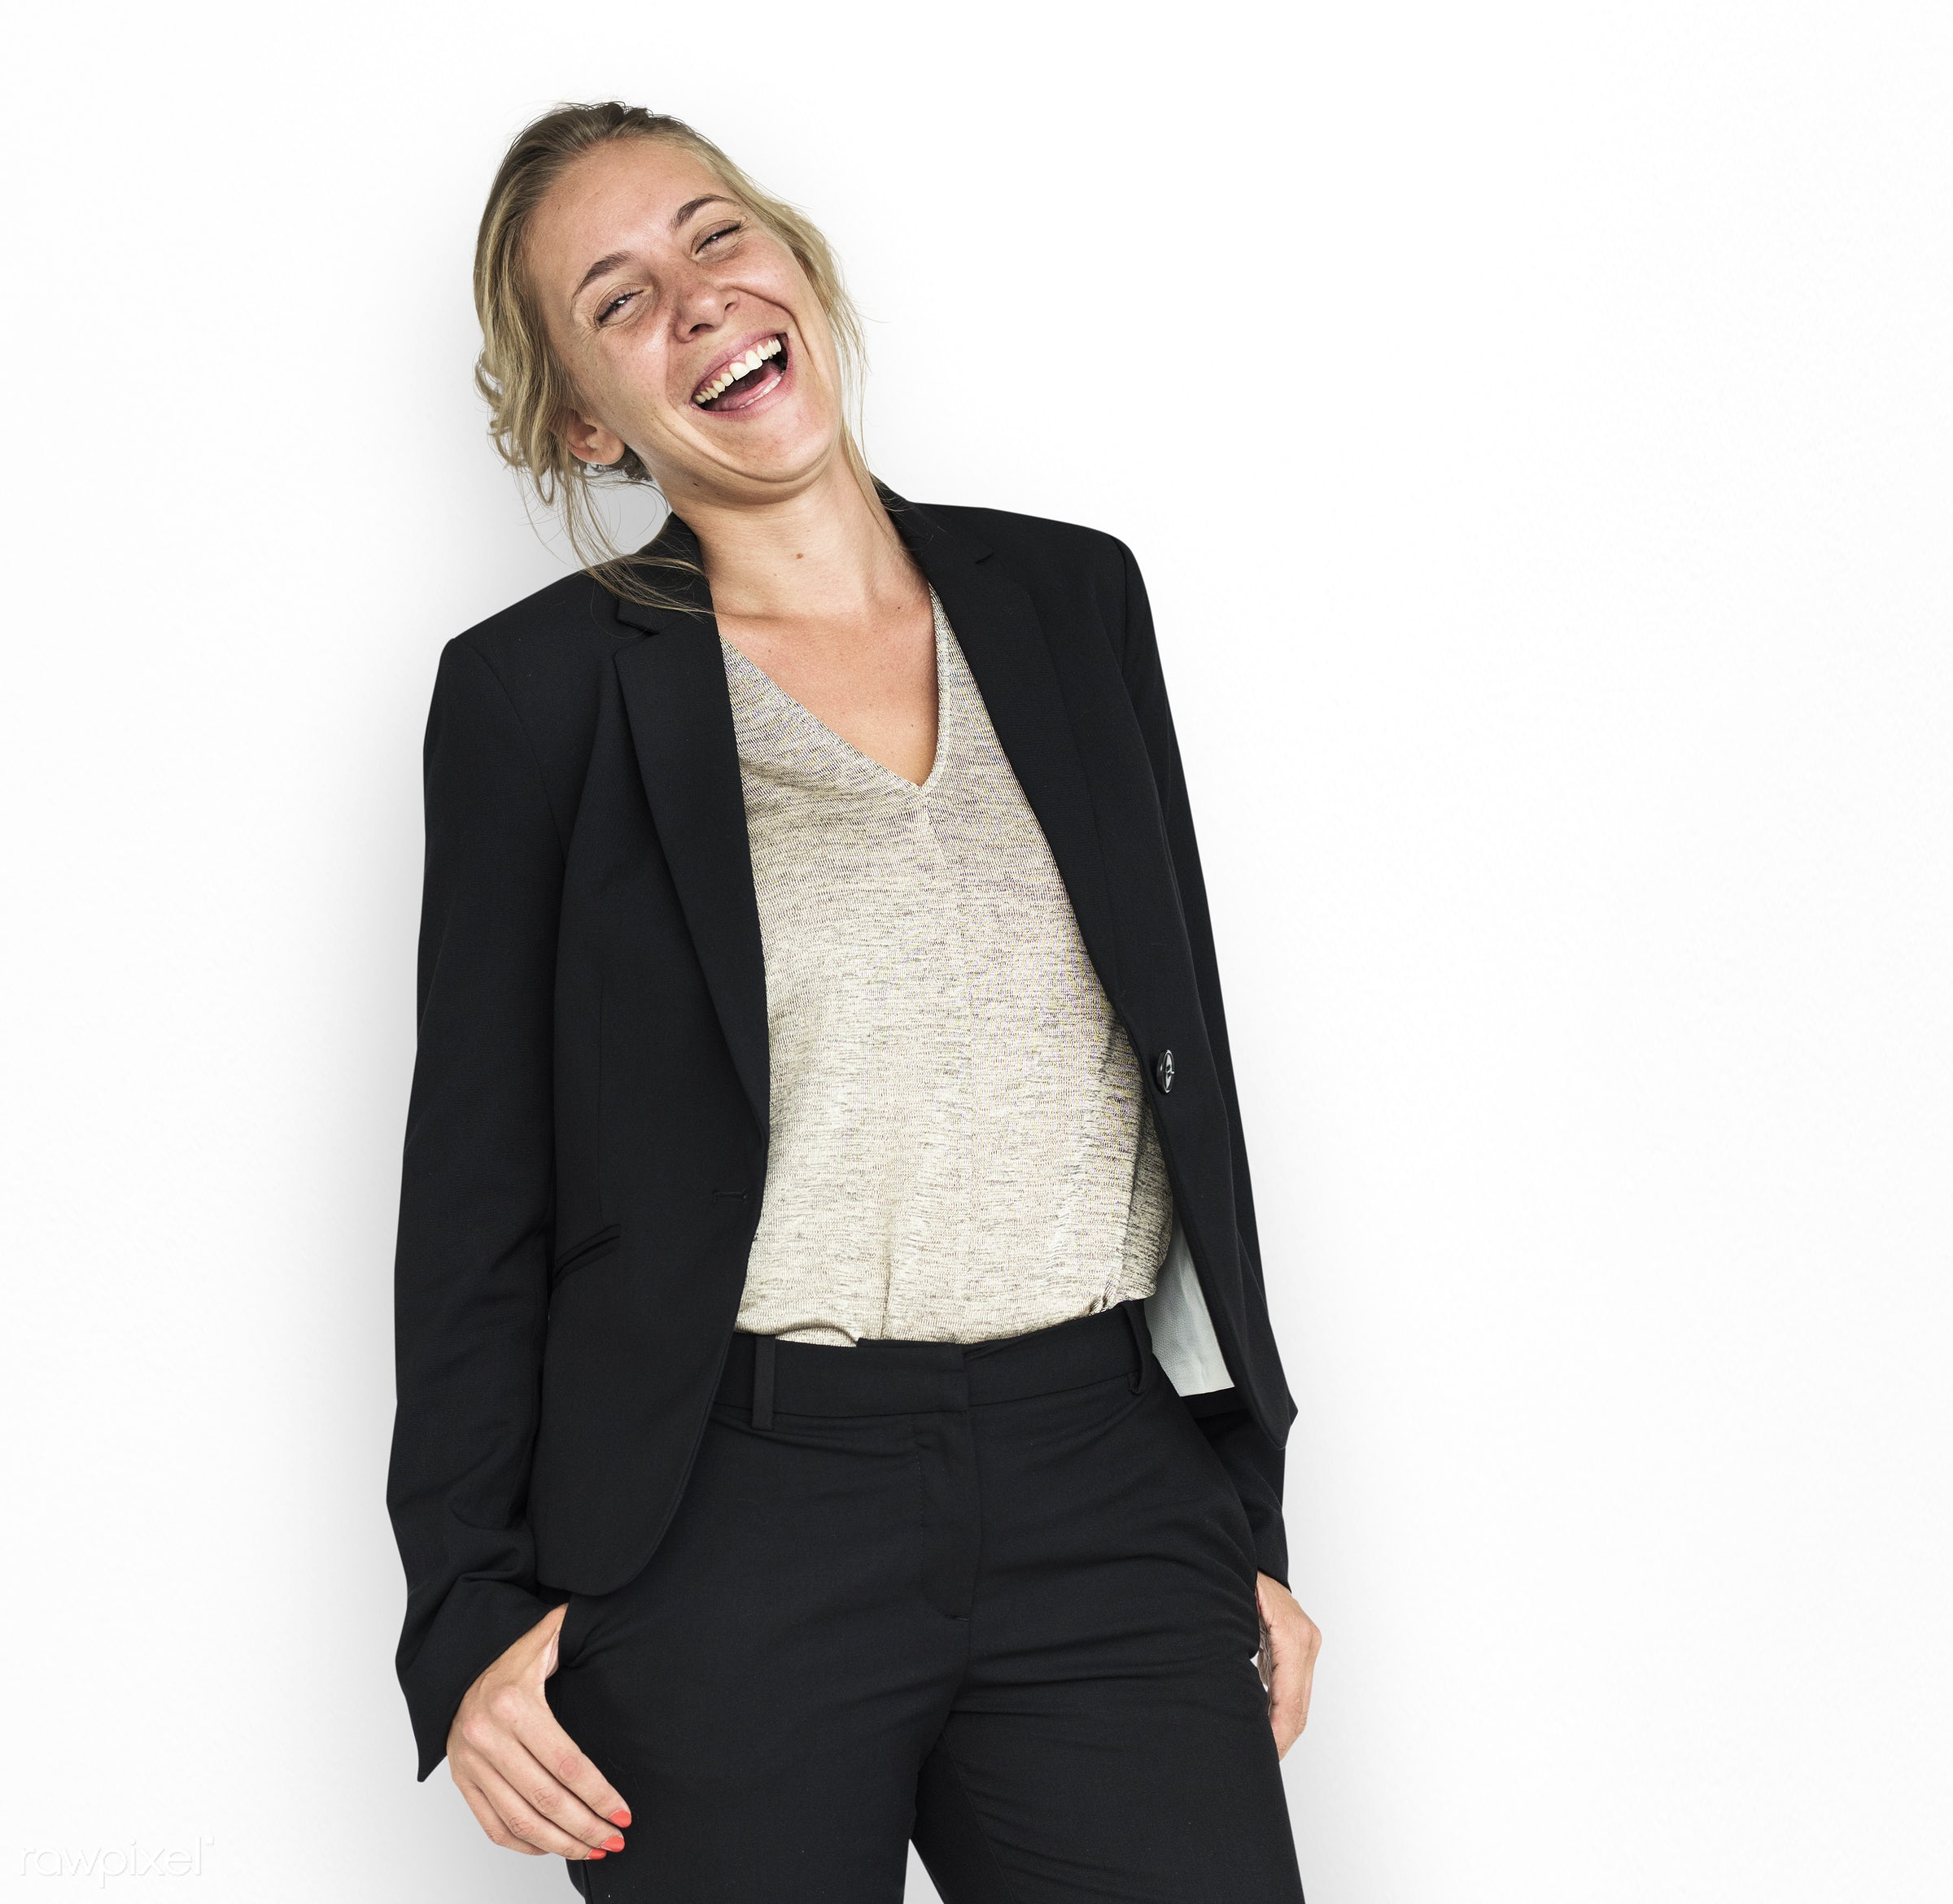 studio, expression, person, business wear, people, business, caucasian, girl, woman, happy, brainstorm, smile, cheerful,...